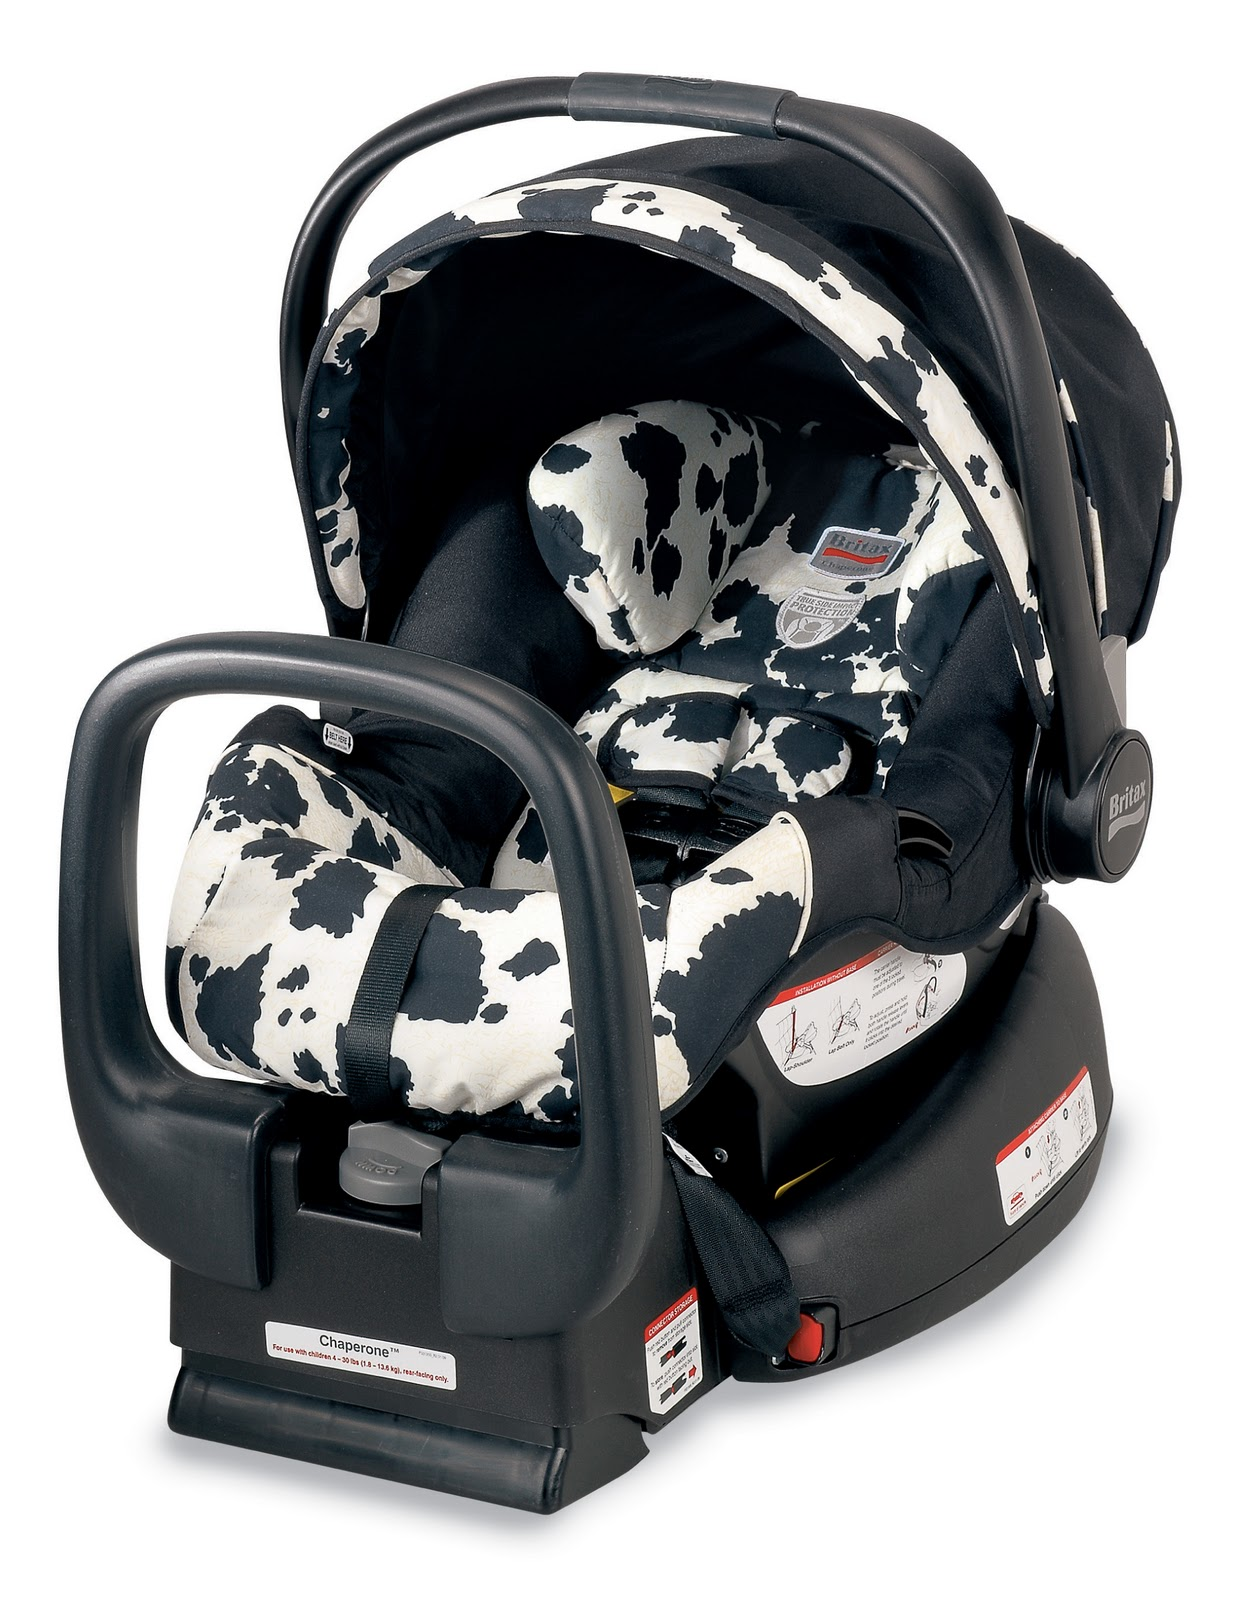 britax chaperone car seat recall born 2 impress. Black Bedroom Furniture Sets. Home Design Ideas